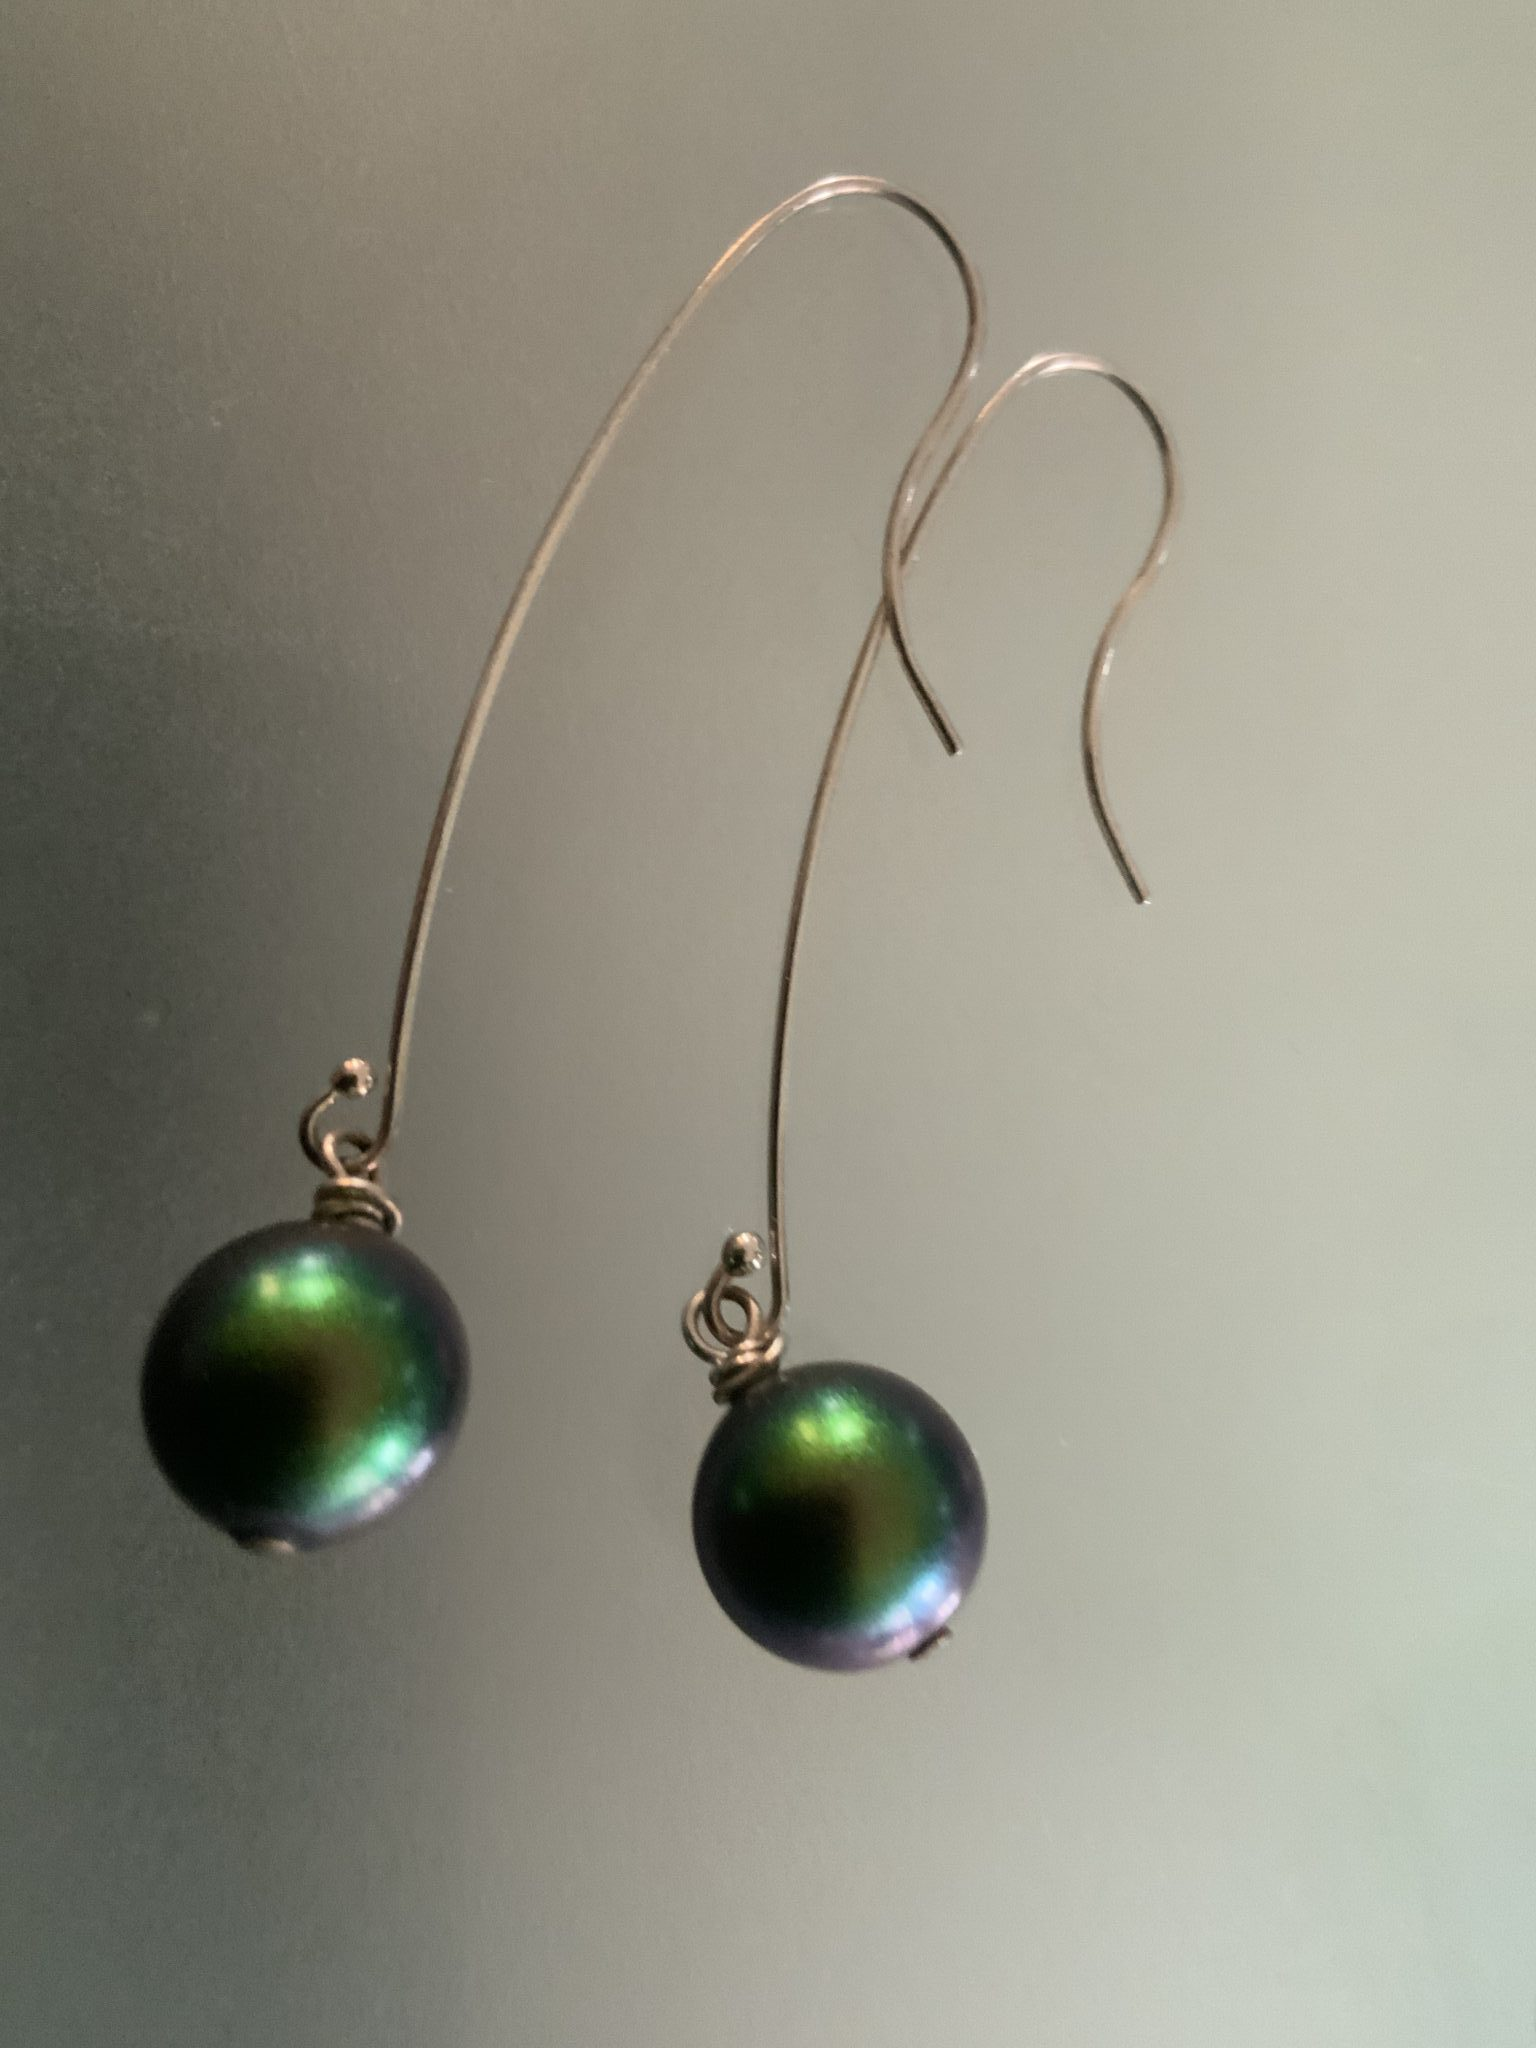 Swarovski Pear Earrings By Covet And Desire (Fitzroy)